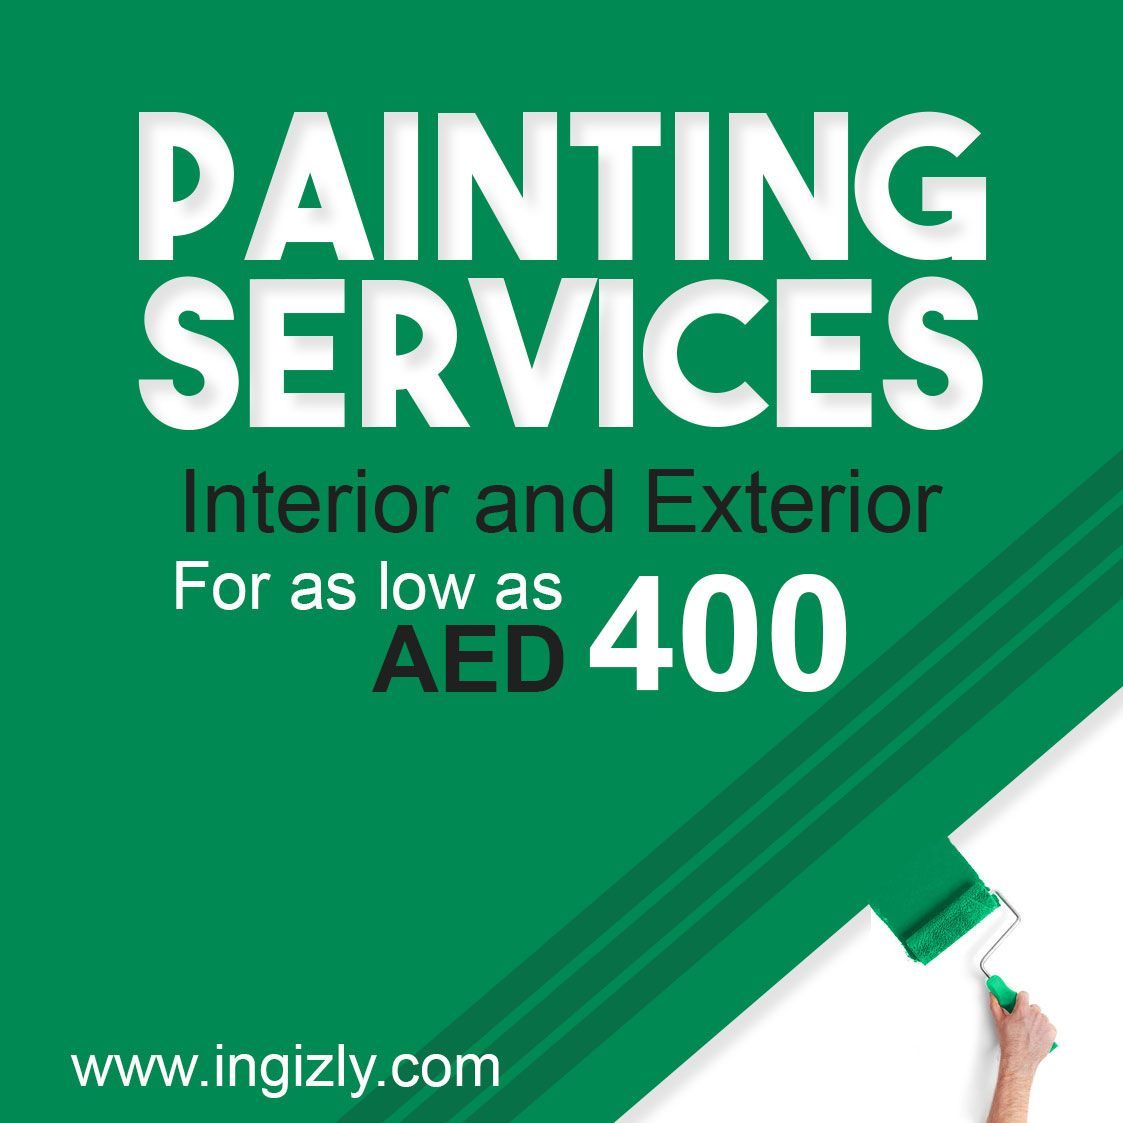 Index Of Public Services Painting Services Affordable Paintings How To Find Out